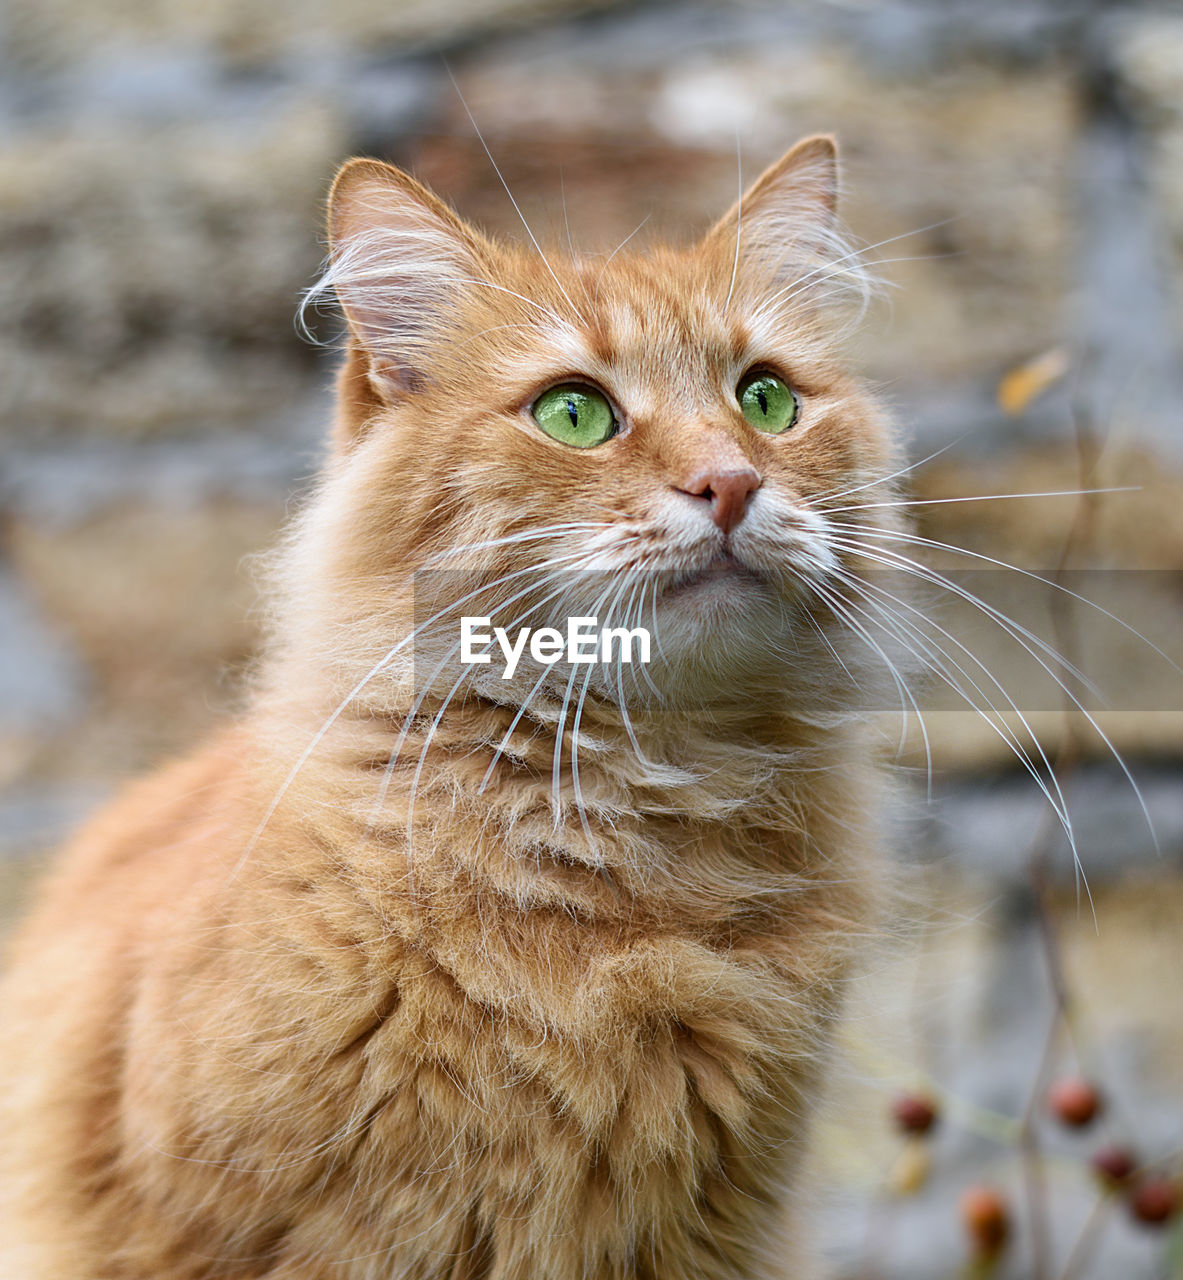 cat, feline, mammal, domestic, pets, animal themes, domestic animals, animal, domestic cat, one animal, whisker, vertebrate, focus on foreground, looking, no people, looking away, close-up, day, animal body part, portrait, animal head, ginger cat, animal eye, tabby